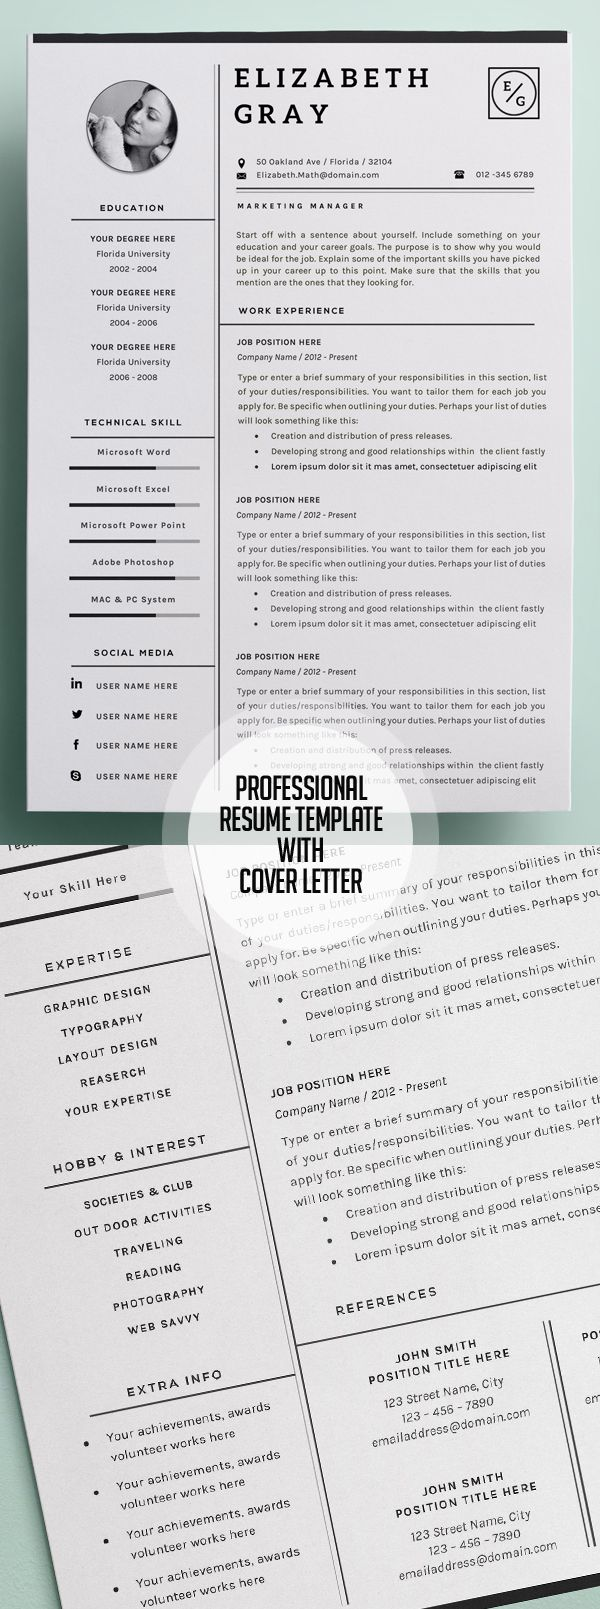 Opposenewapstandardsus  Gorgeous  Resume Ideas On Pinterest  Resume Resume Templates And  With Handsome Professional And Modern Resume Template With Page Cover Cvtemplate With Easy On The Eye Teacher Resume Objective Also Resume Templates Pdf In Addition Maintenance Technician Resume And Resume For Job Application As Well As Educational Resume Additionally Machinist Resume From Pinterestcom With Opposenewapstandardsus  Handsome  Resume Ideas On Pinterest  Resume Resume Templates And  With Easy On The Eye Professional And Modern Resume Template With Page Cover Cvtemplate And Gorgeous Teacher Resume Objective Also Resume Templates Pdf In Addition Maintenance Technician Resume From Pinterestcom